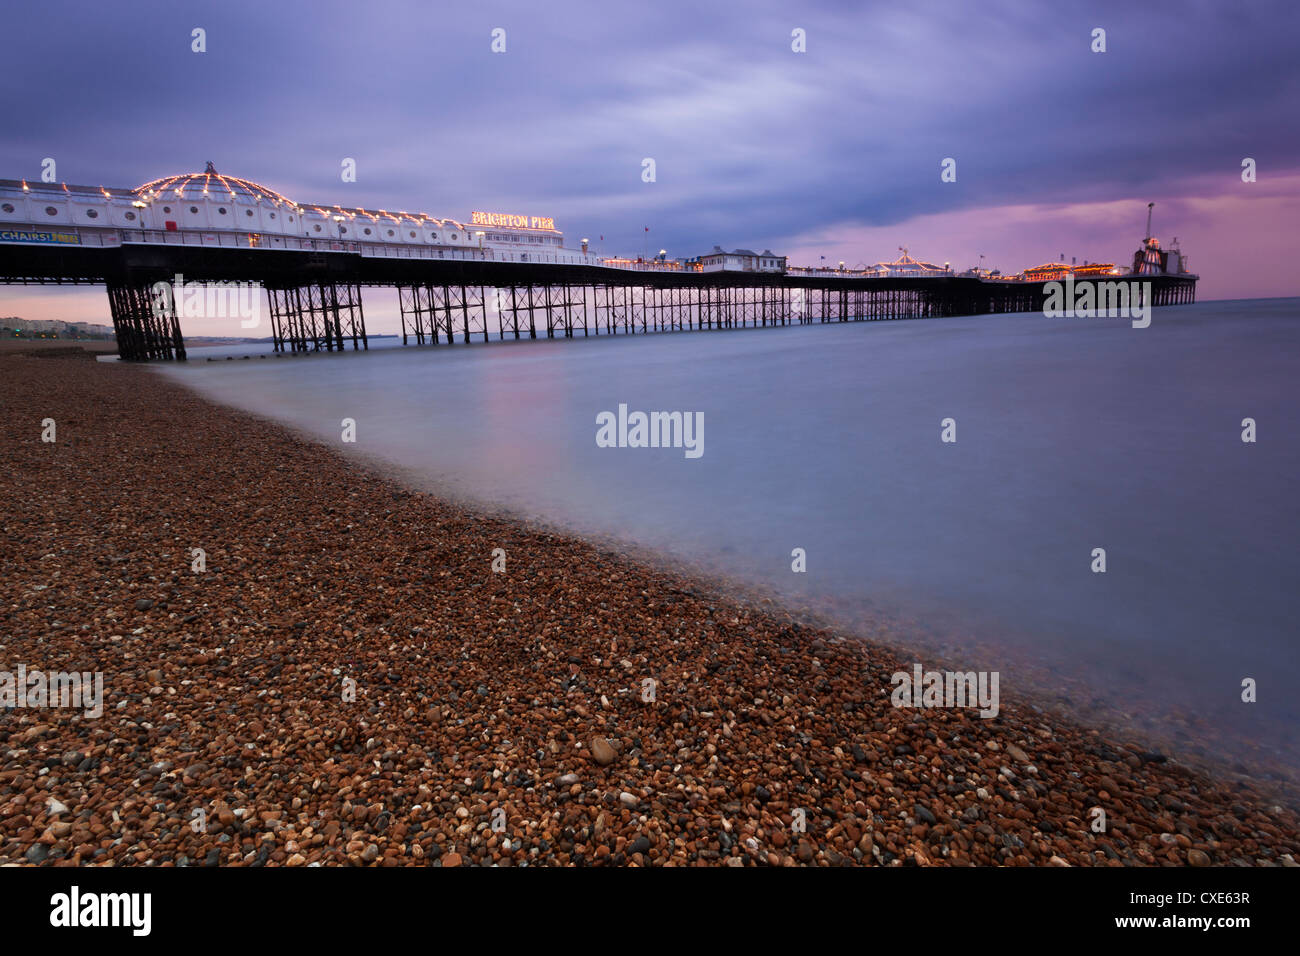 Looking out at Brighton Pier from Brighton beach, taken at sunset, Brighton, Sussex, England, United Kingdom, Europe - Stock Image